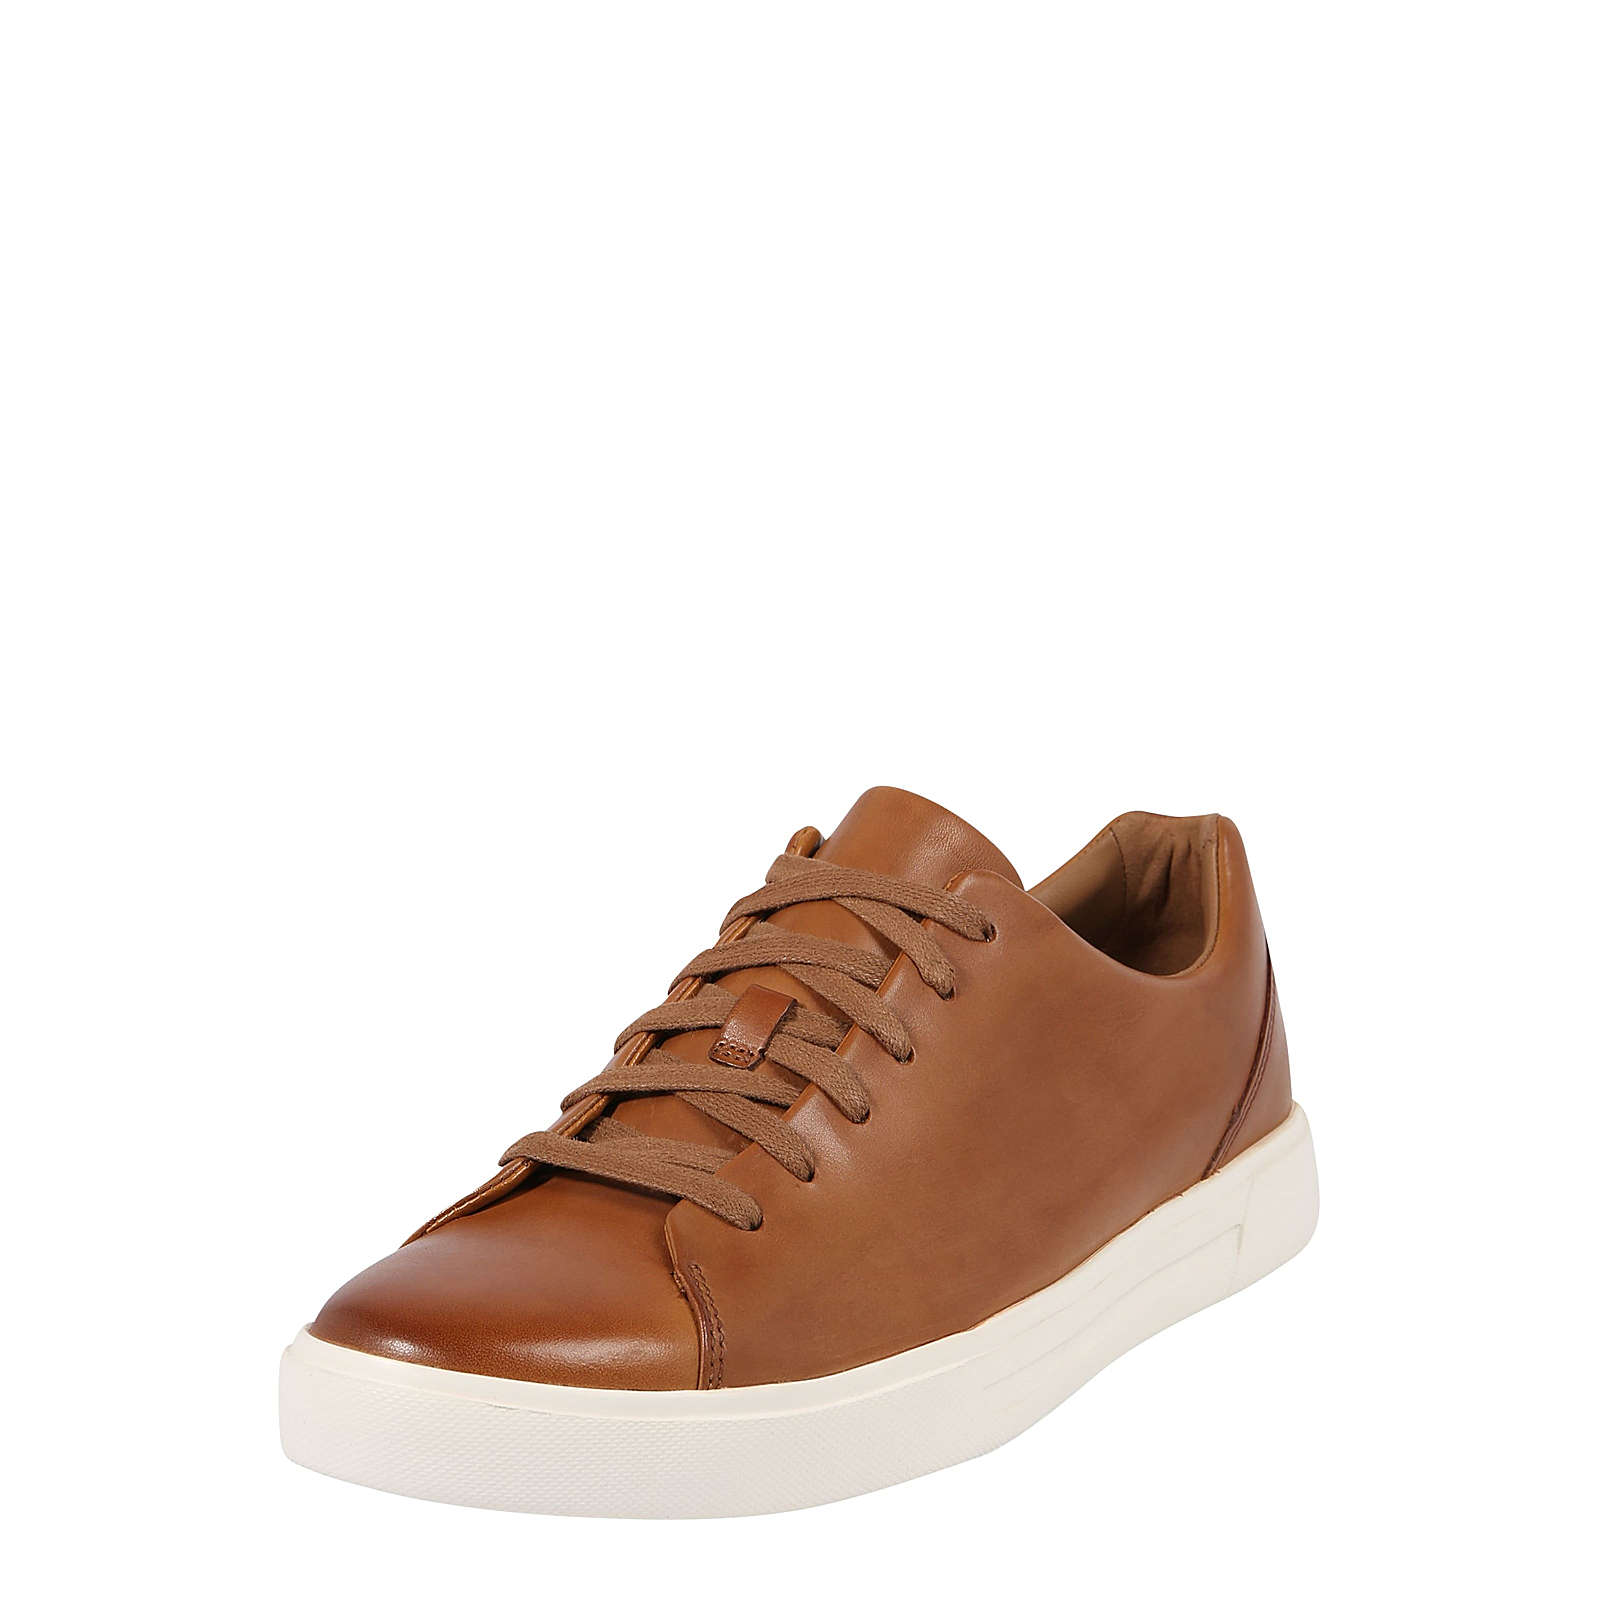 CLARKS Sneaker low Un Costa Lace Sneakers Low cognac Herren Gr. 44